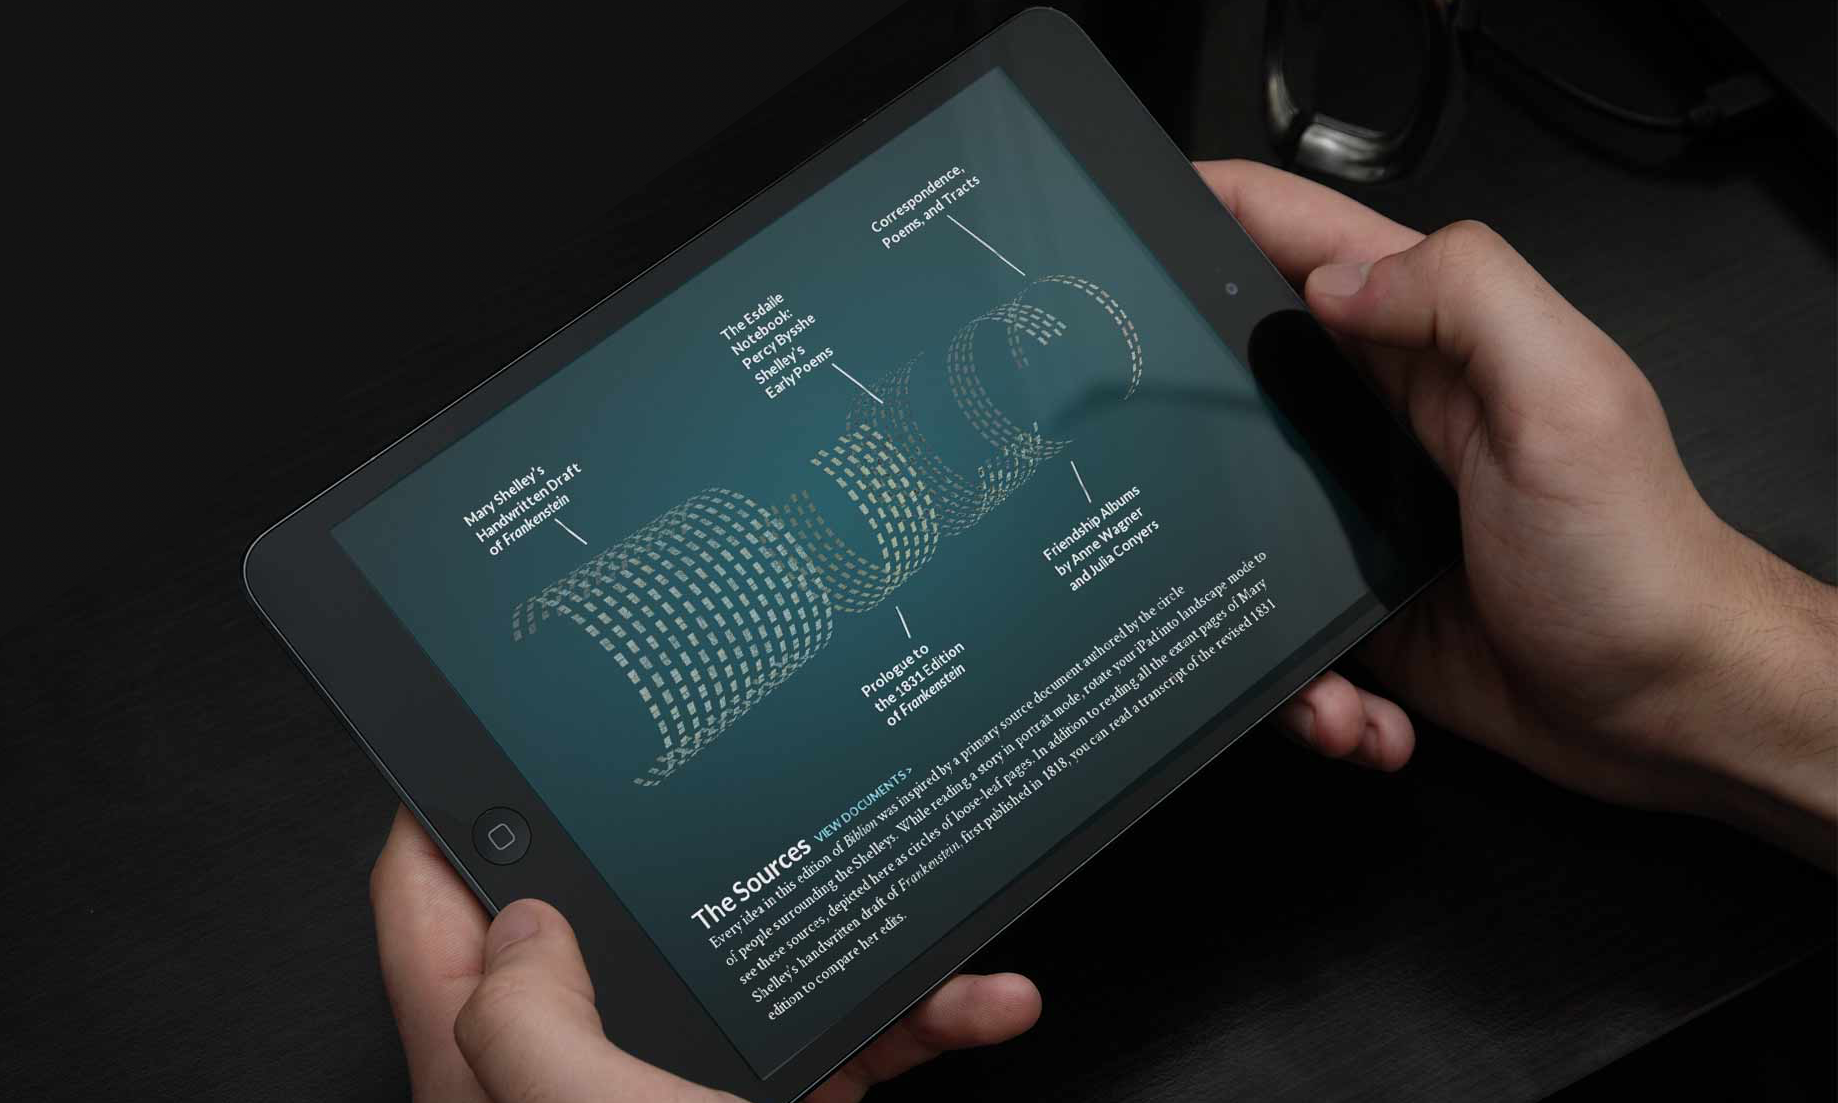 New York Public Library  Immersive Education iPad app about Frankenstein and beyond   • Experience Design • UI Design • Content Strategy